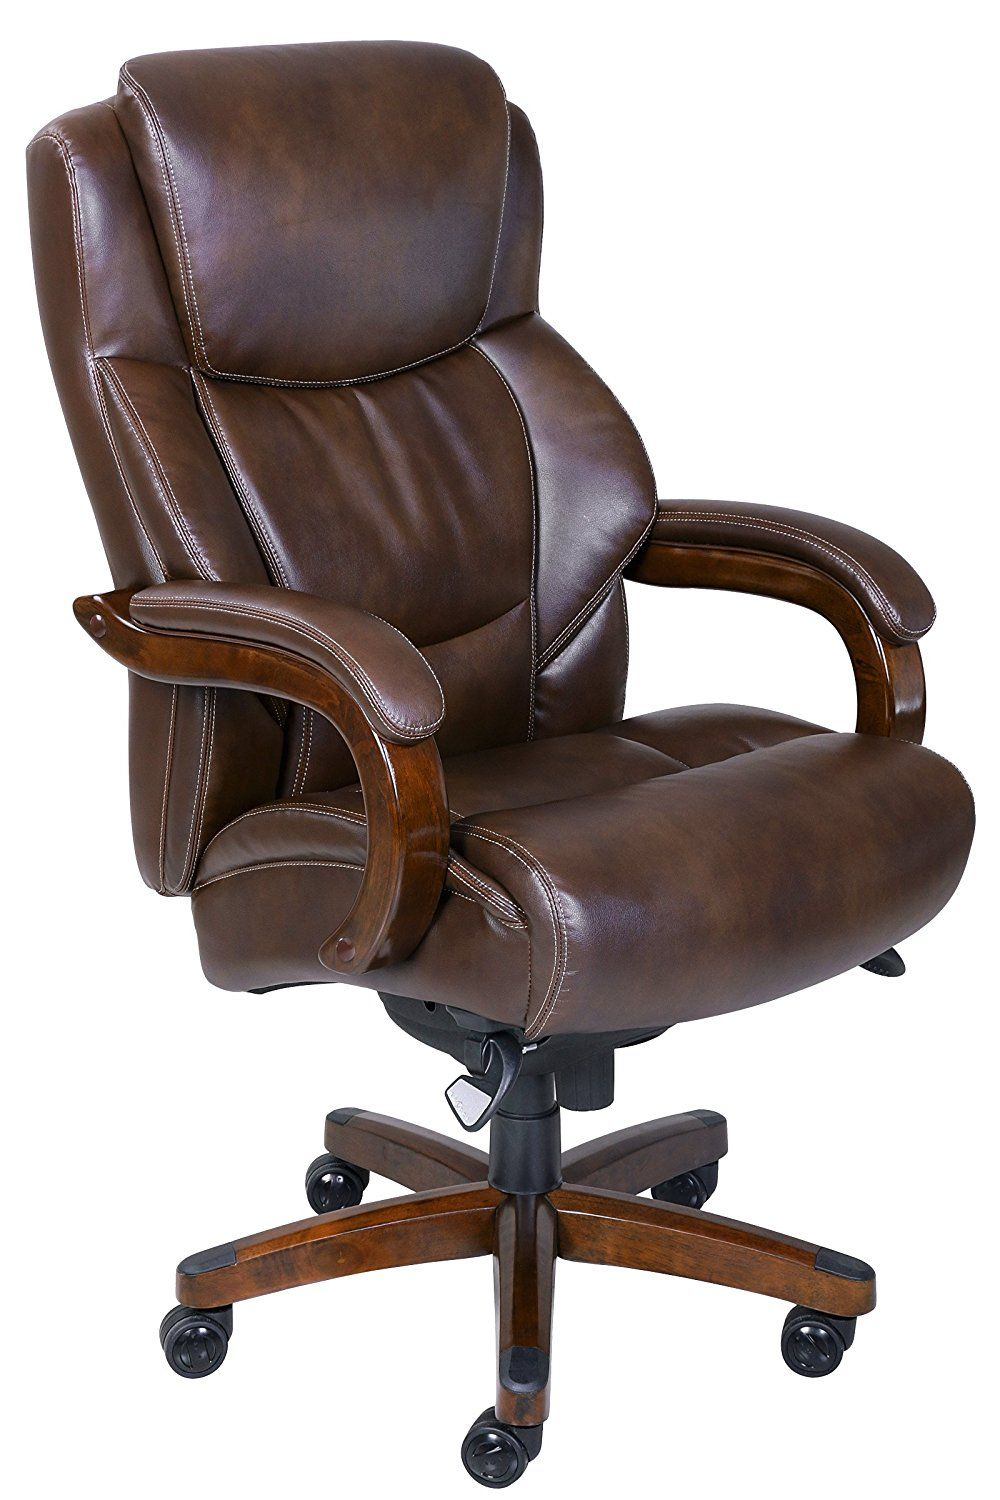 ca tall kitchen executive z home amazon brown and comfortcore delano chestnut chair big office la dp traditions boy